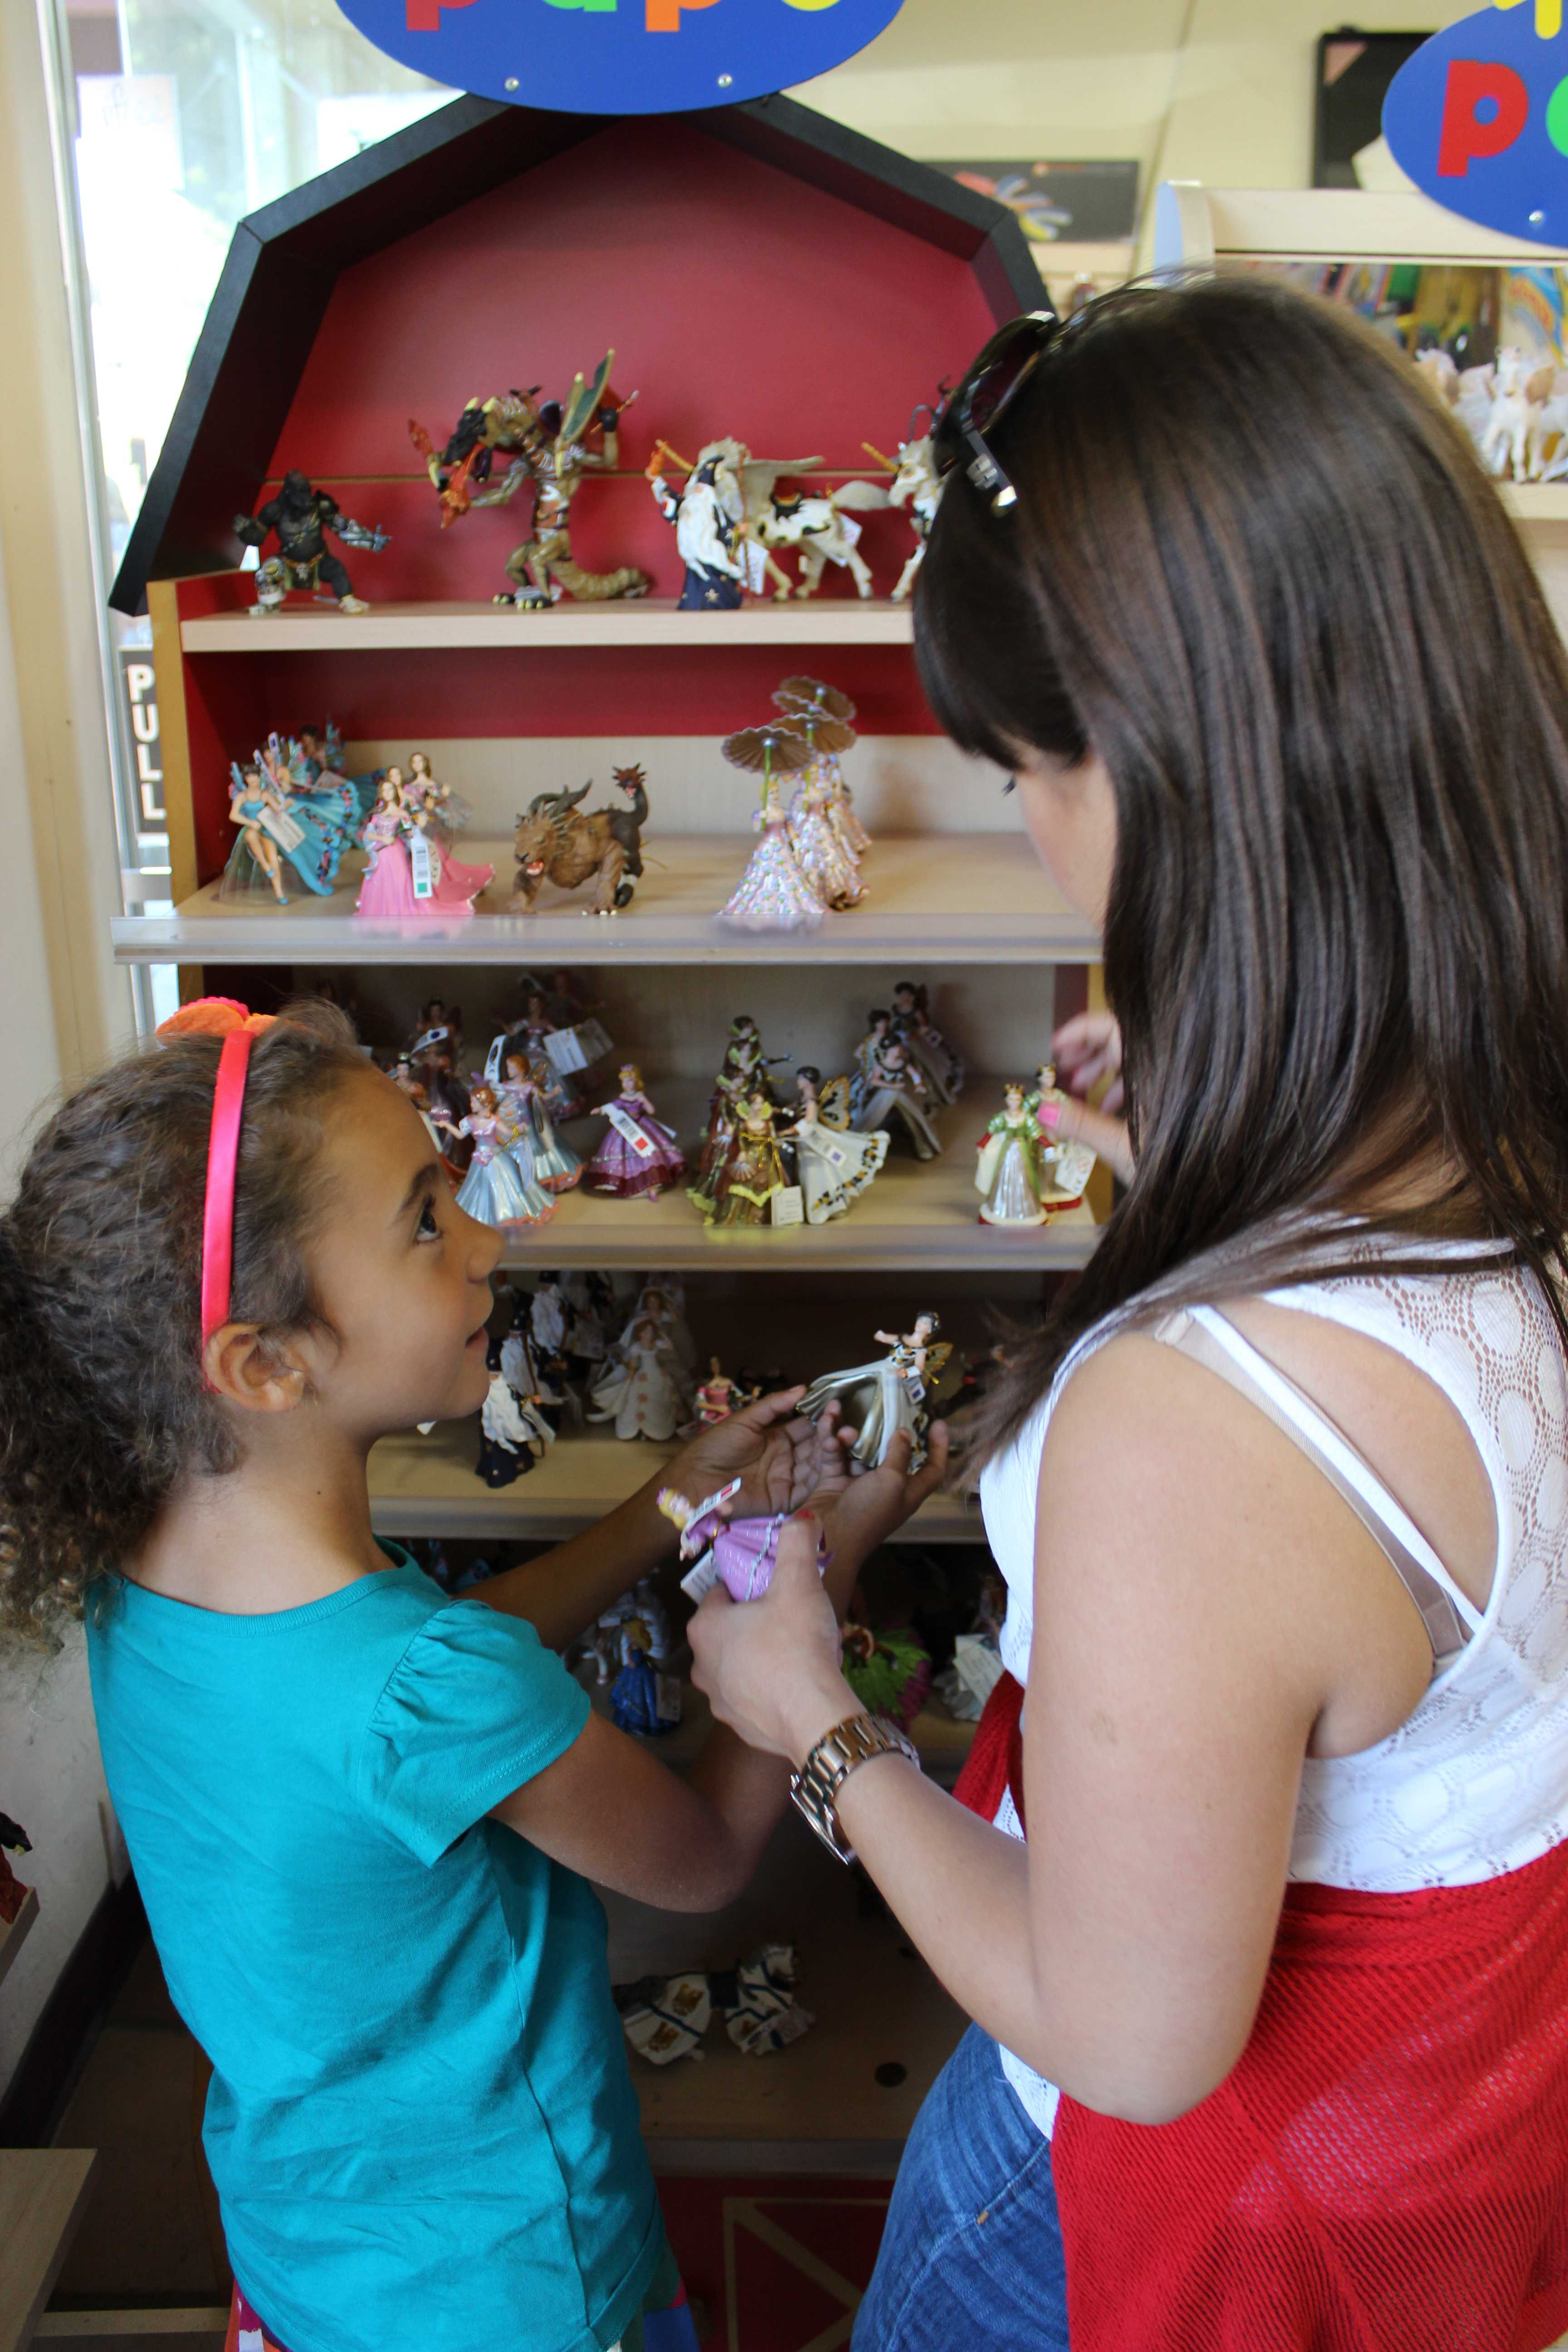 Palo Alto Sport Shop & Toy World customers explore the shop's display of animal figurines. Photo by Madison Mignola.